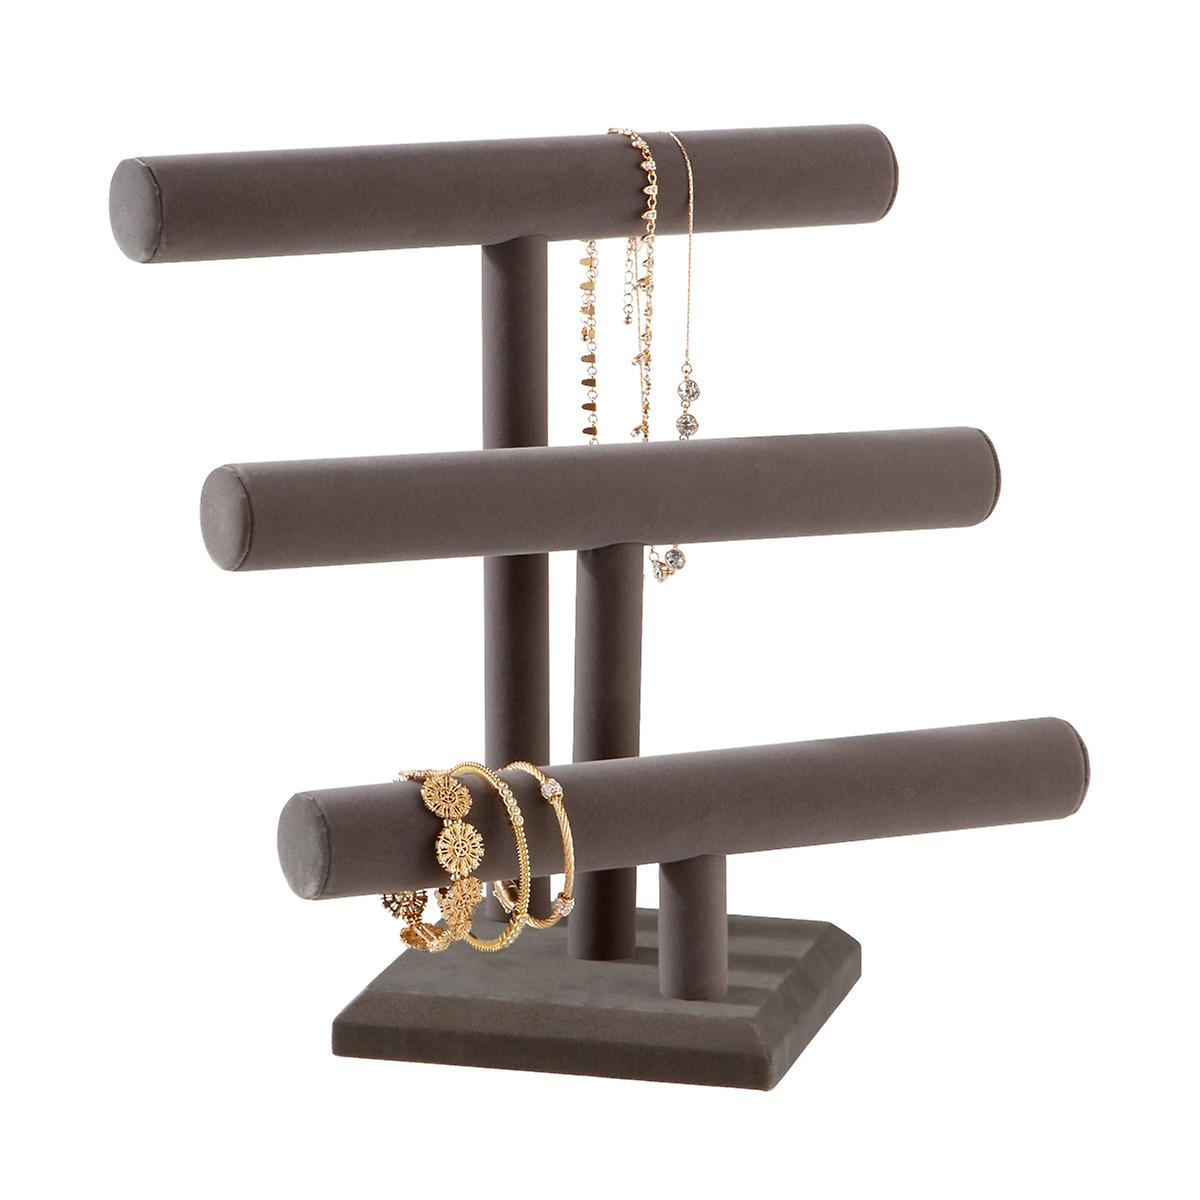 Greer Image Consulting - How to Organizer Your Jewelry - Tabletop Jewelry Organizer